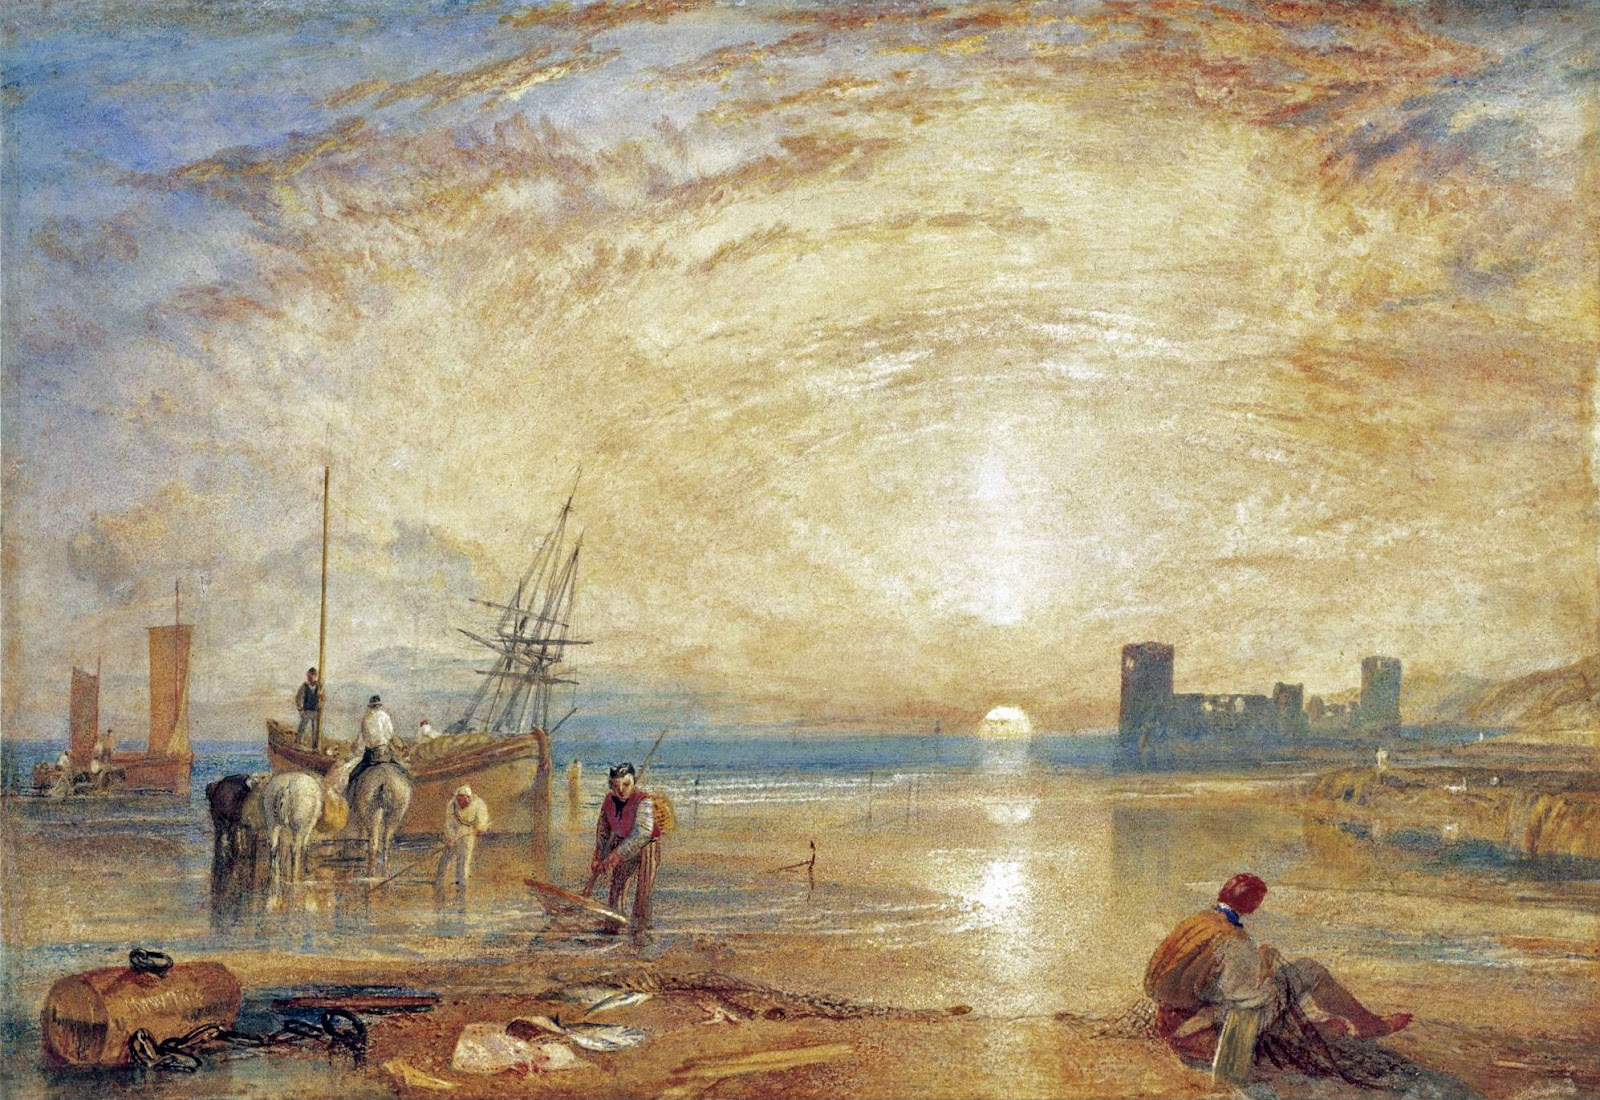 essay on joseph mallord william turner The welsh landscape exerted a strong hold on joseph mallord william turner joseph william turner used according to an essay by christiana payne, turner.